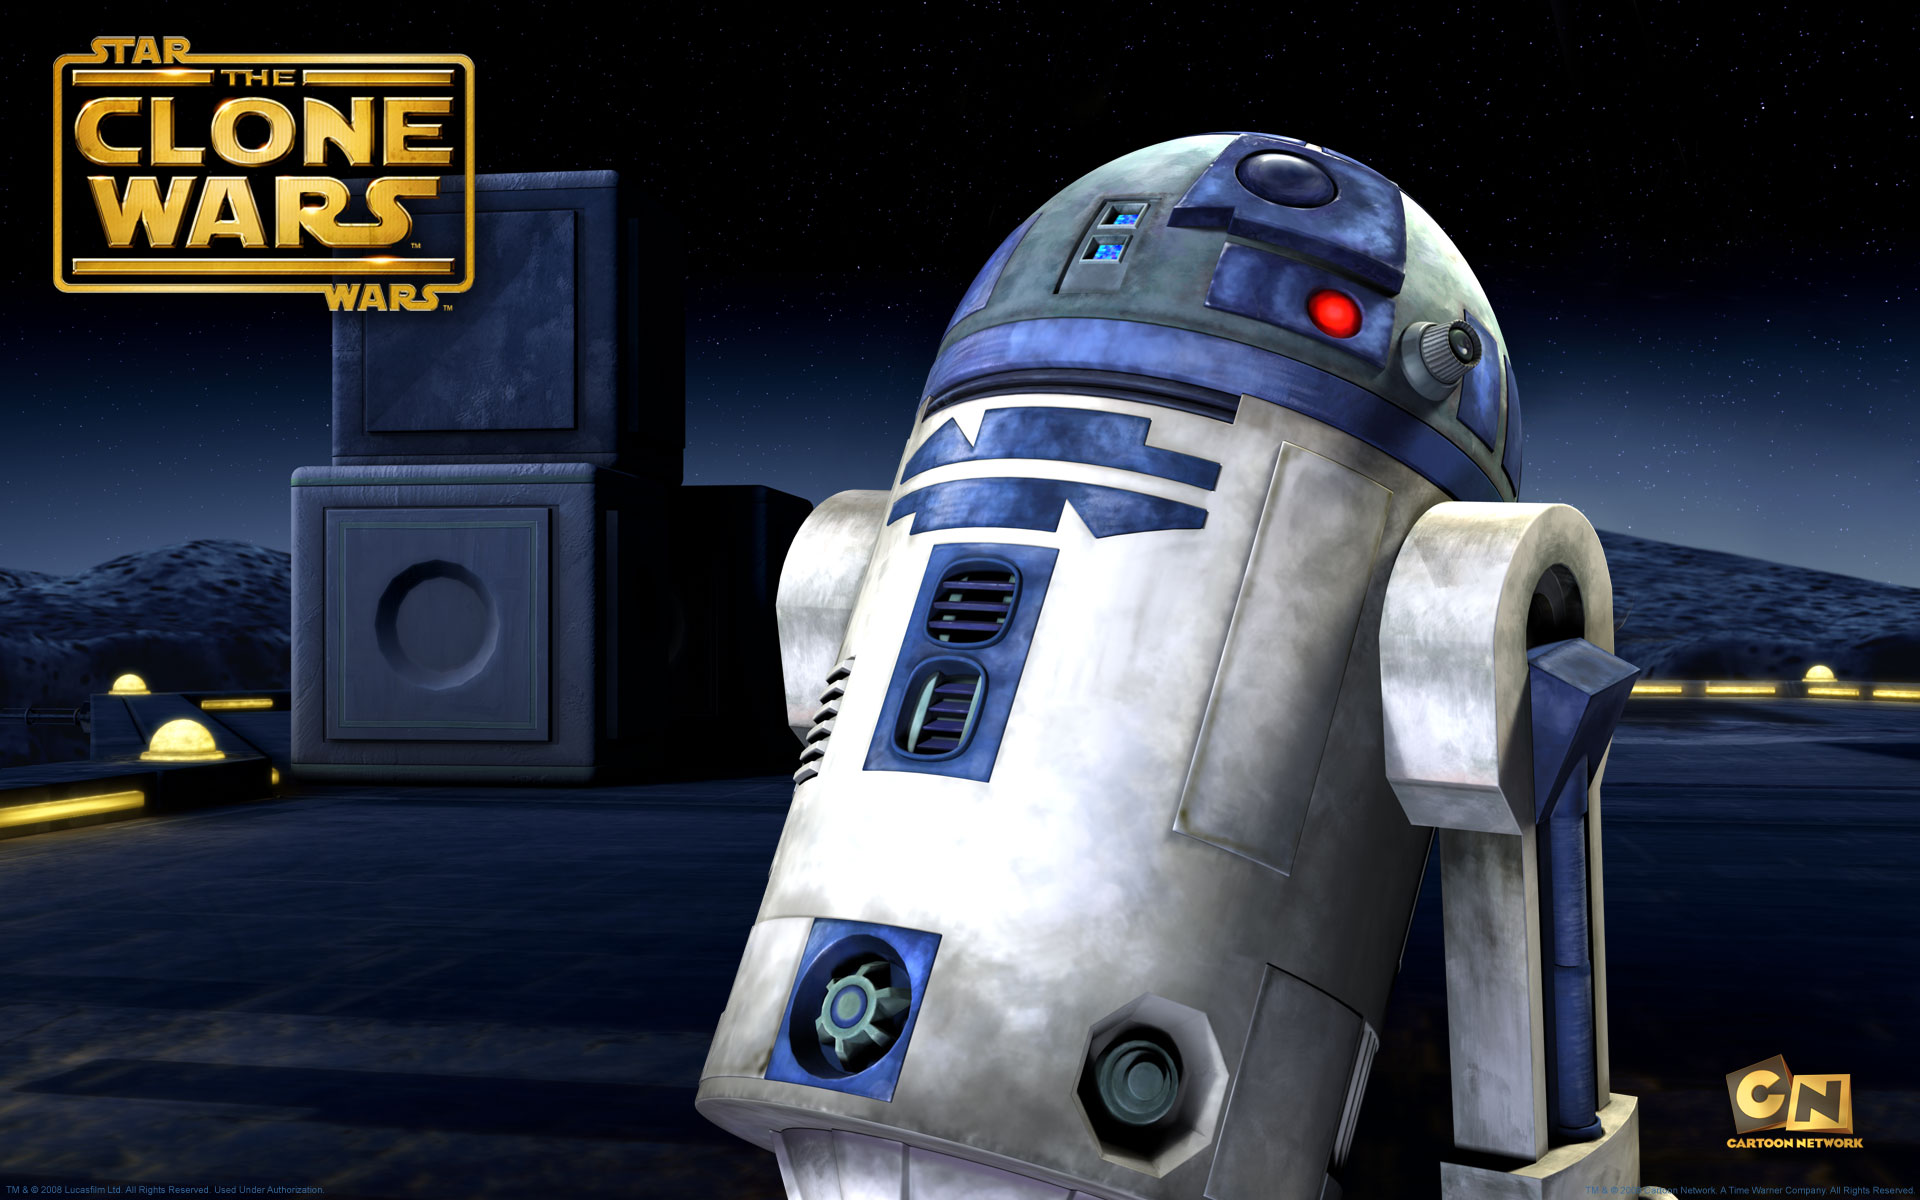 Star wars the clone wars r2d2 wallpaper